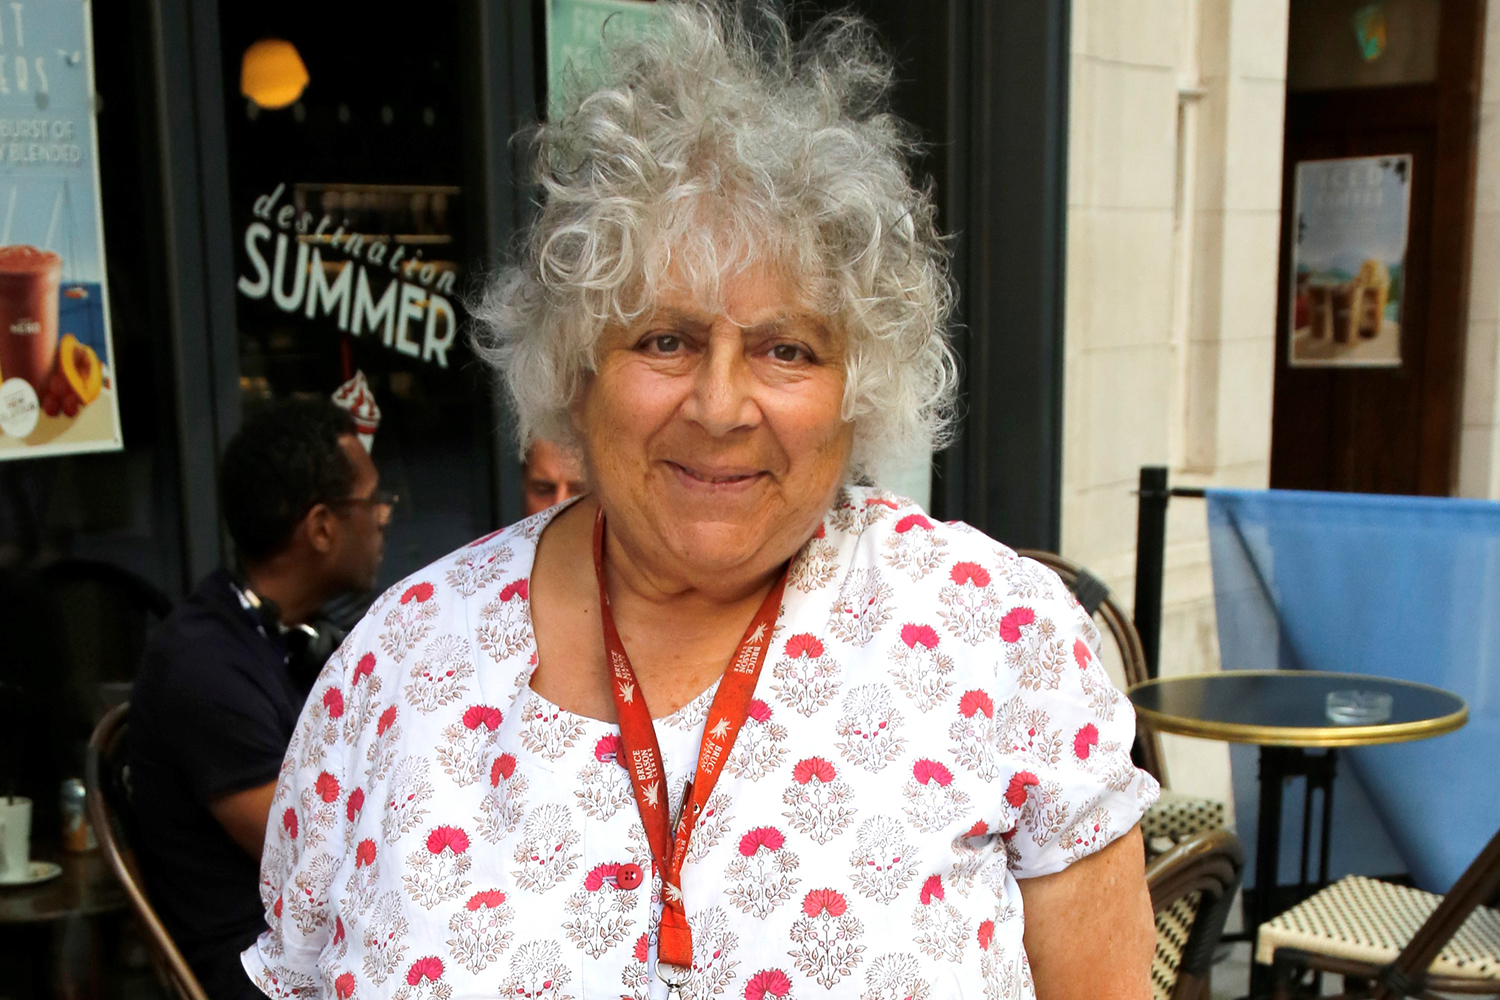 Miriam Margolyes sparks over 200 Ofcom complaints for saying she wanted 'Boris Johnson to die'